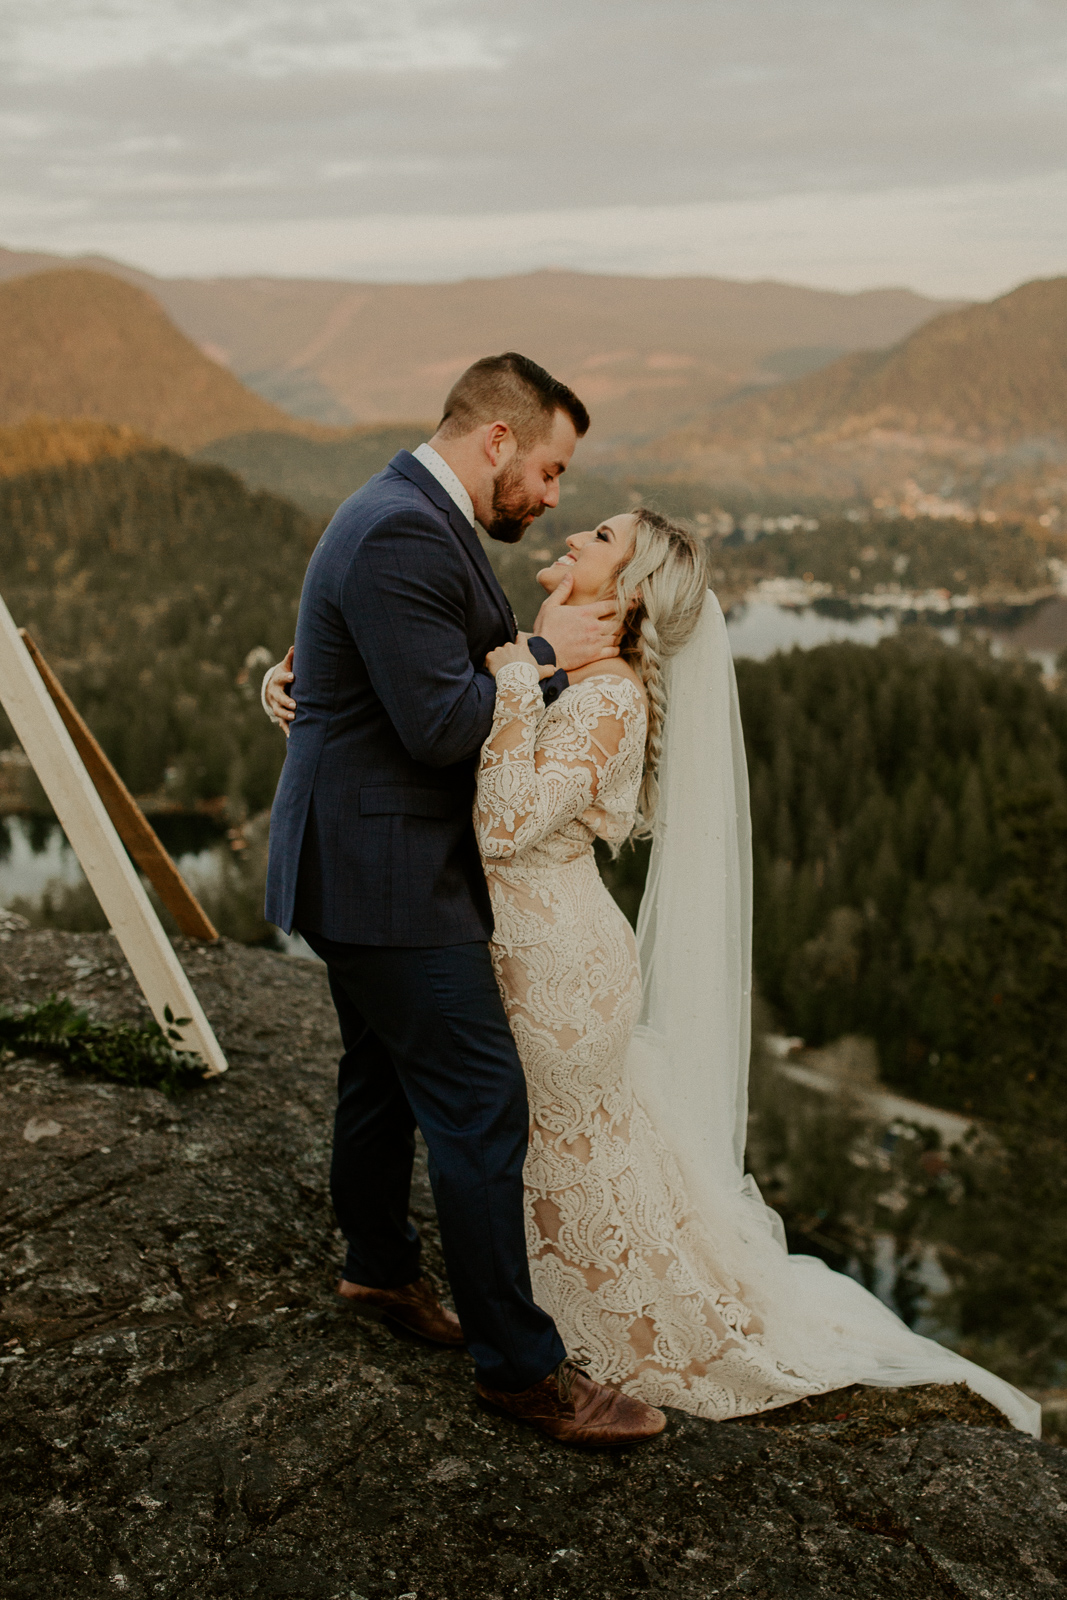 Luke Lambertson Photo_BritishColumbia_Canada_AdventurousCouple_Elopement_IMG-8468-2.jpg